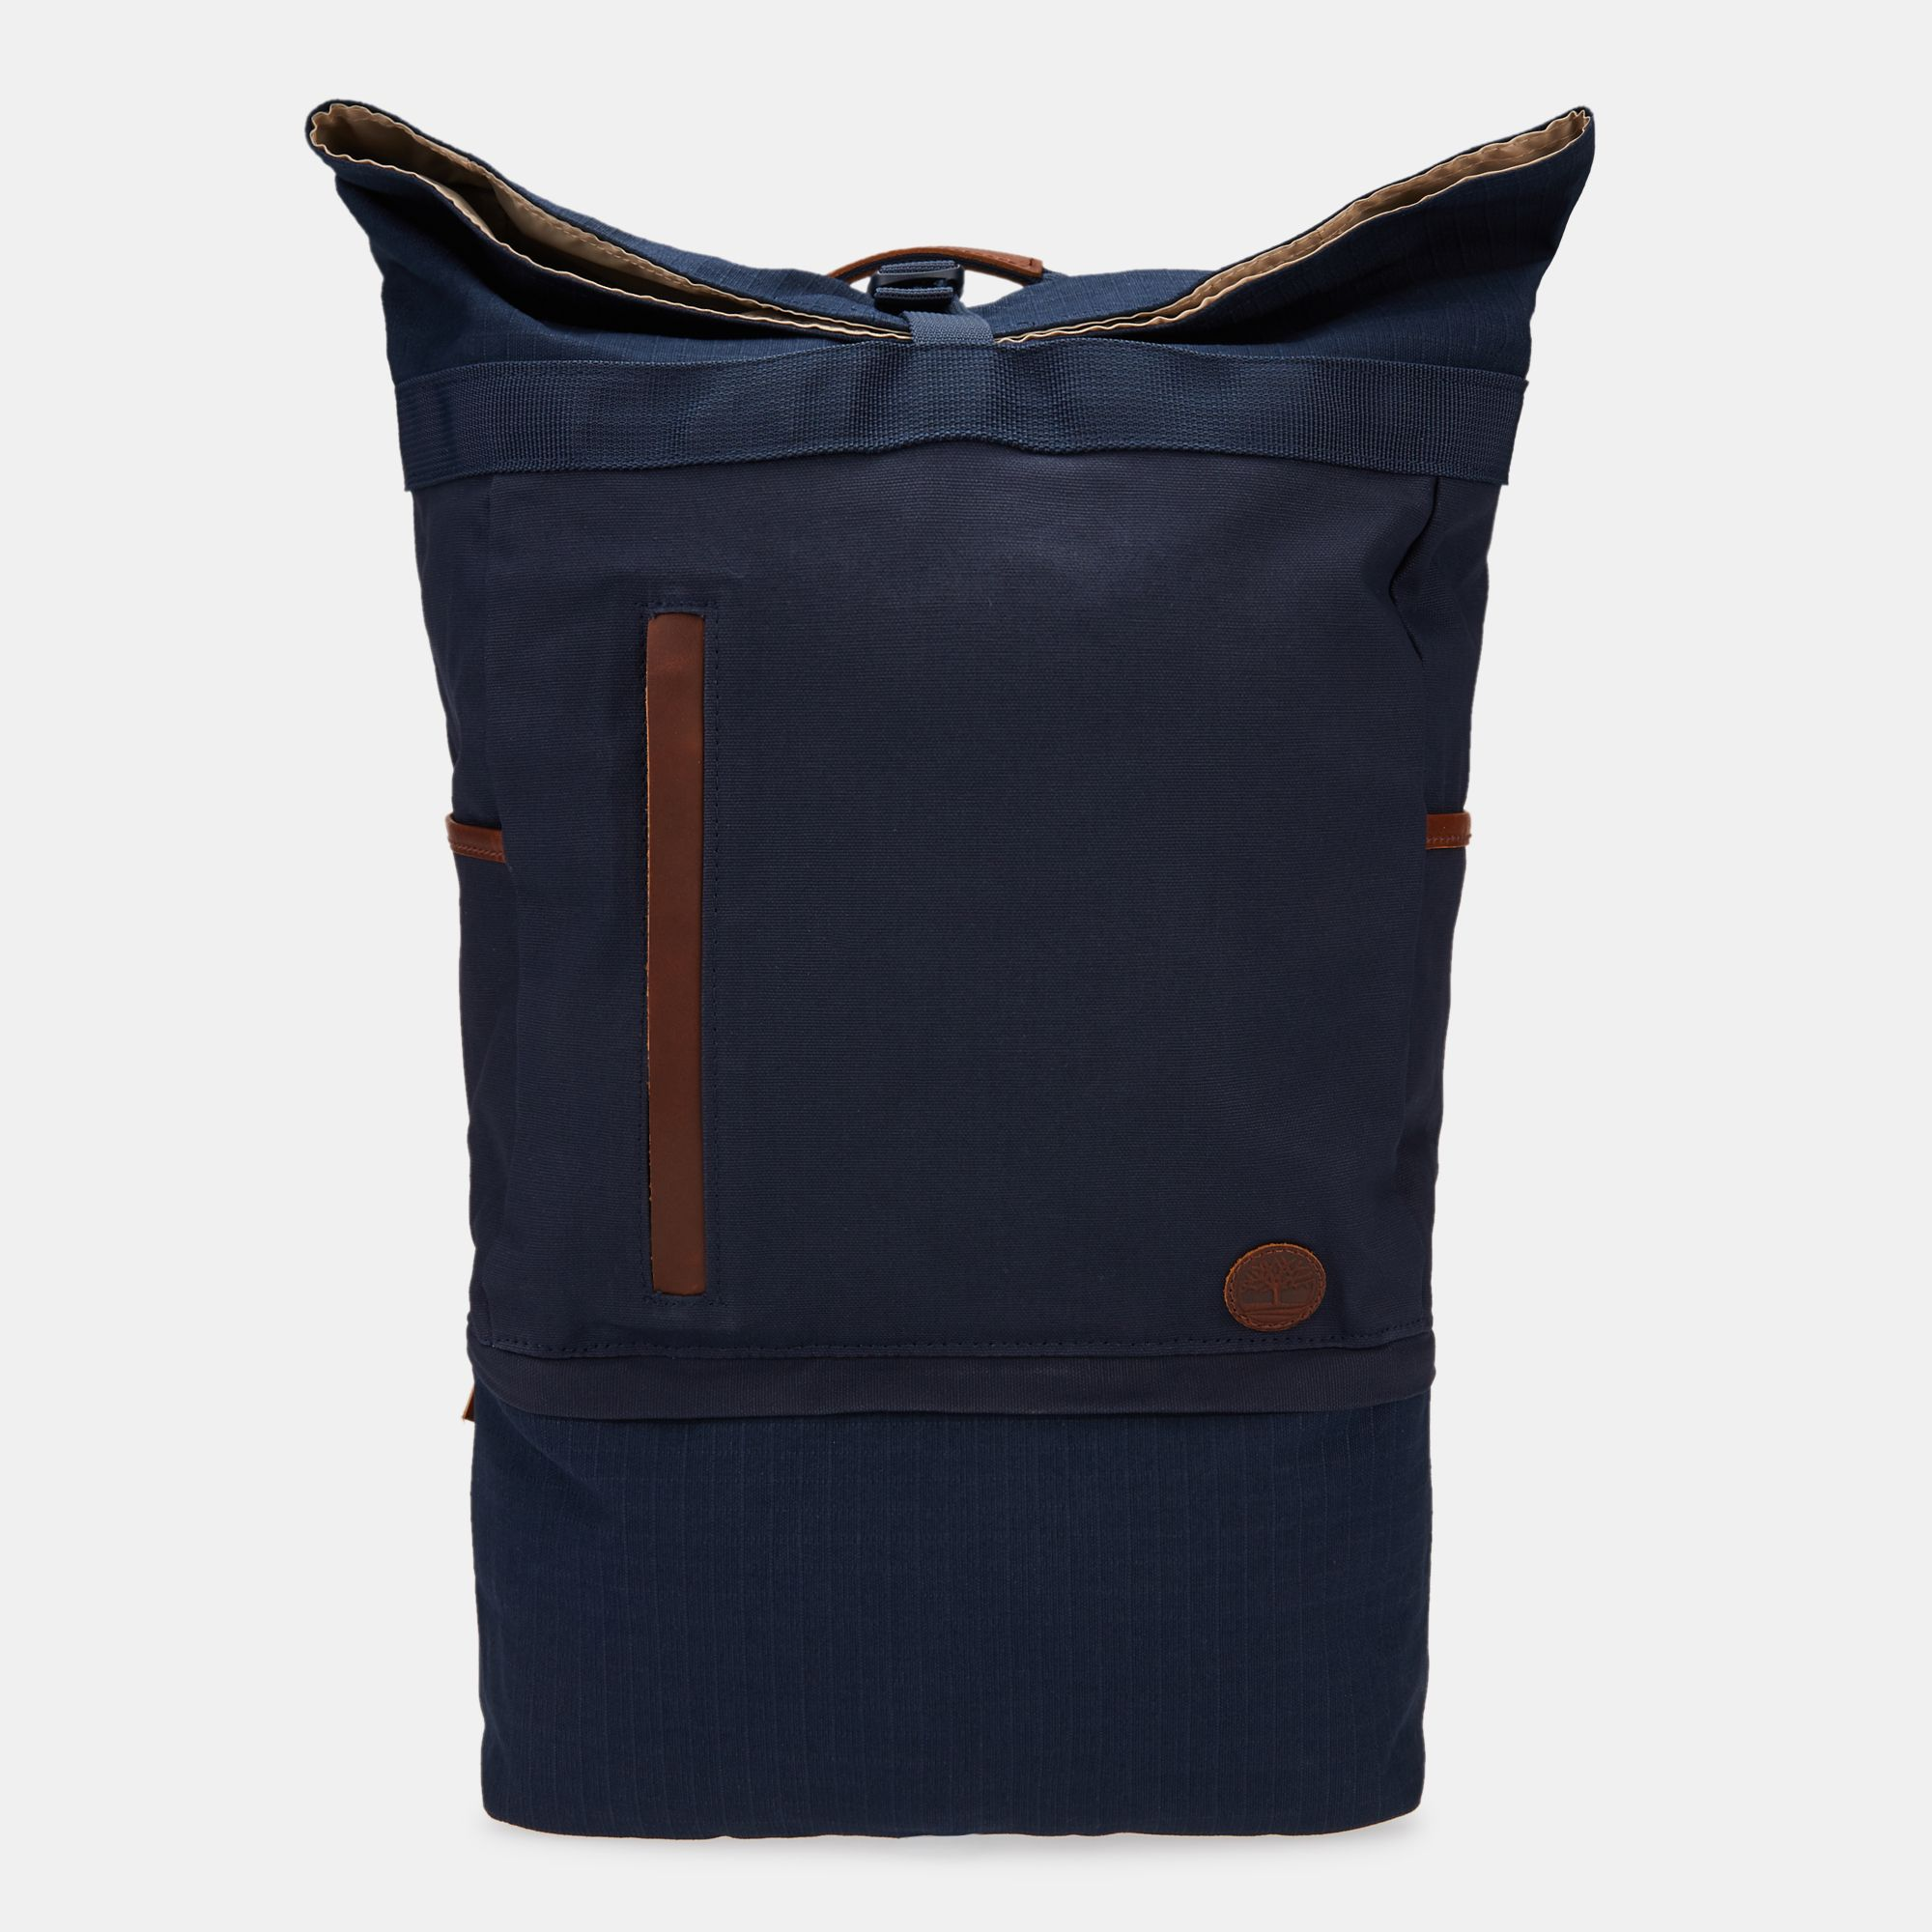 Timberland Cohasset Roll Top Backpack